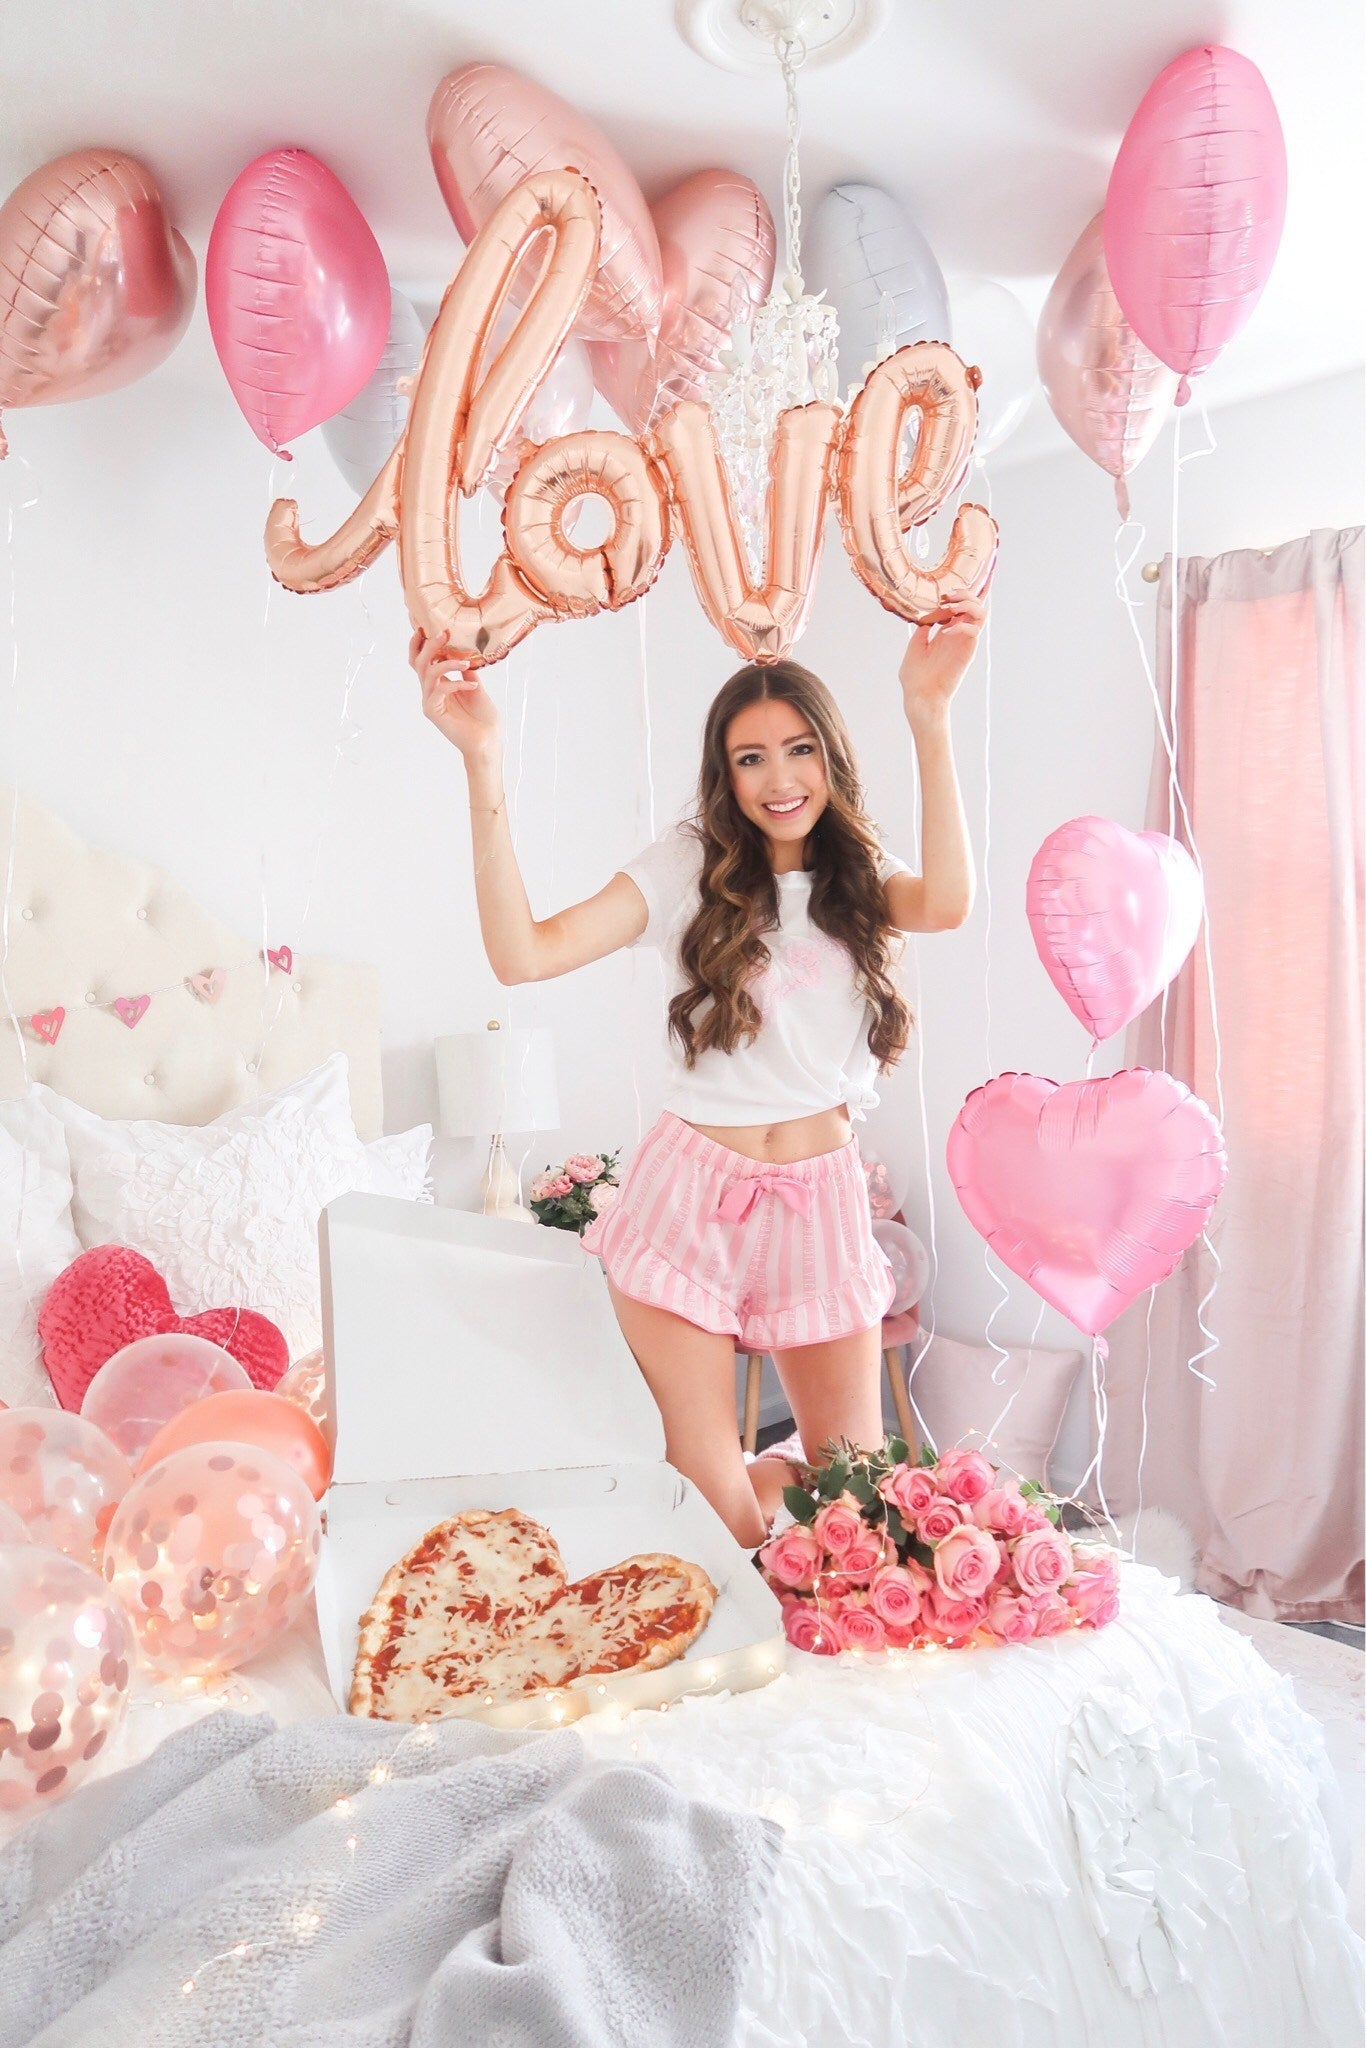 Valentine's Day Photo Ideas - Valentine's Day Love Balloon - Valentine's Day Decorations